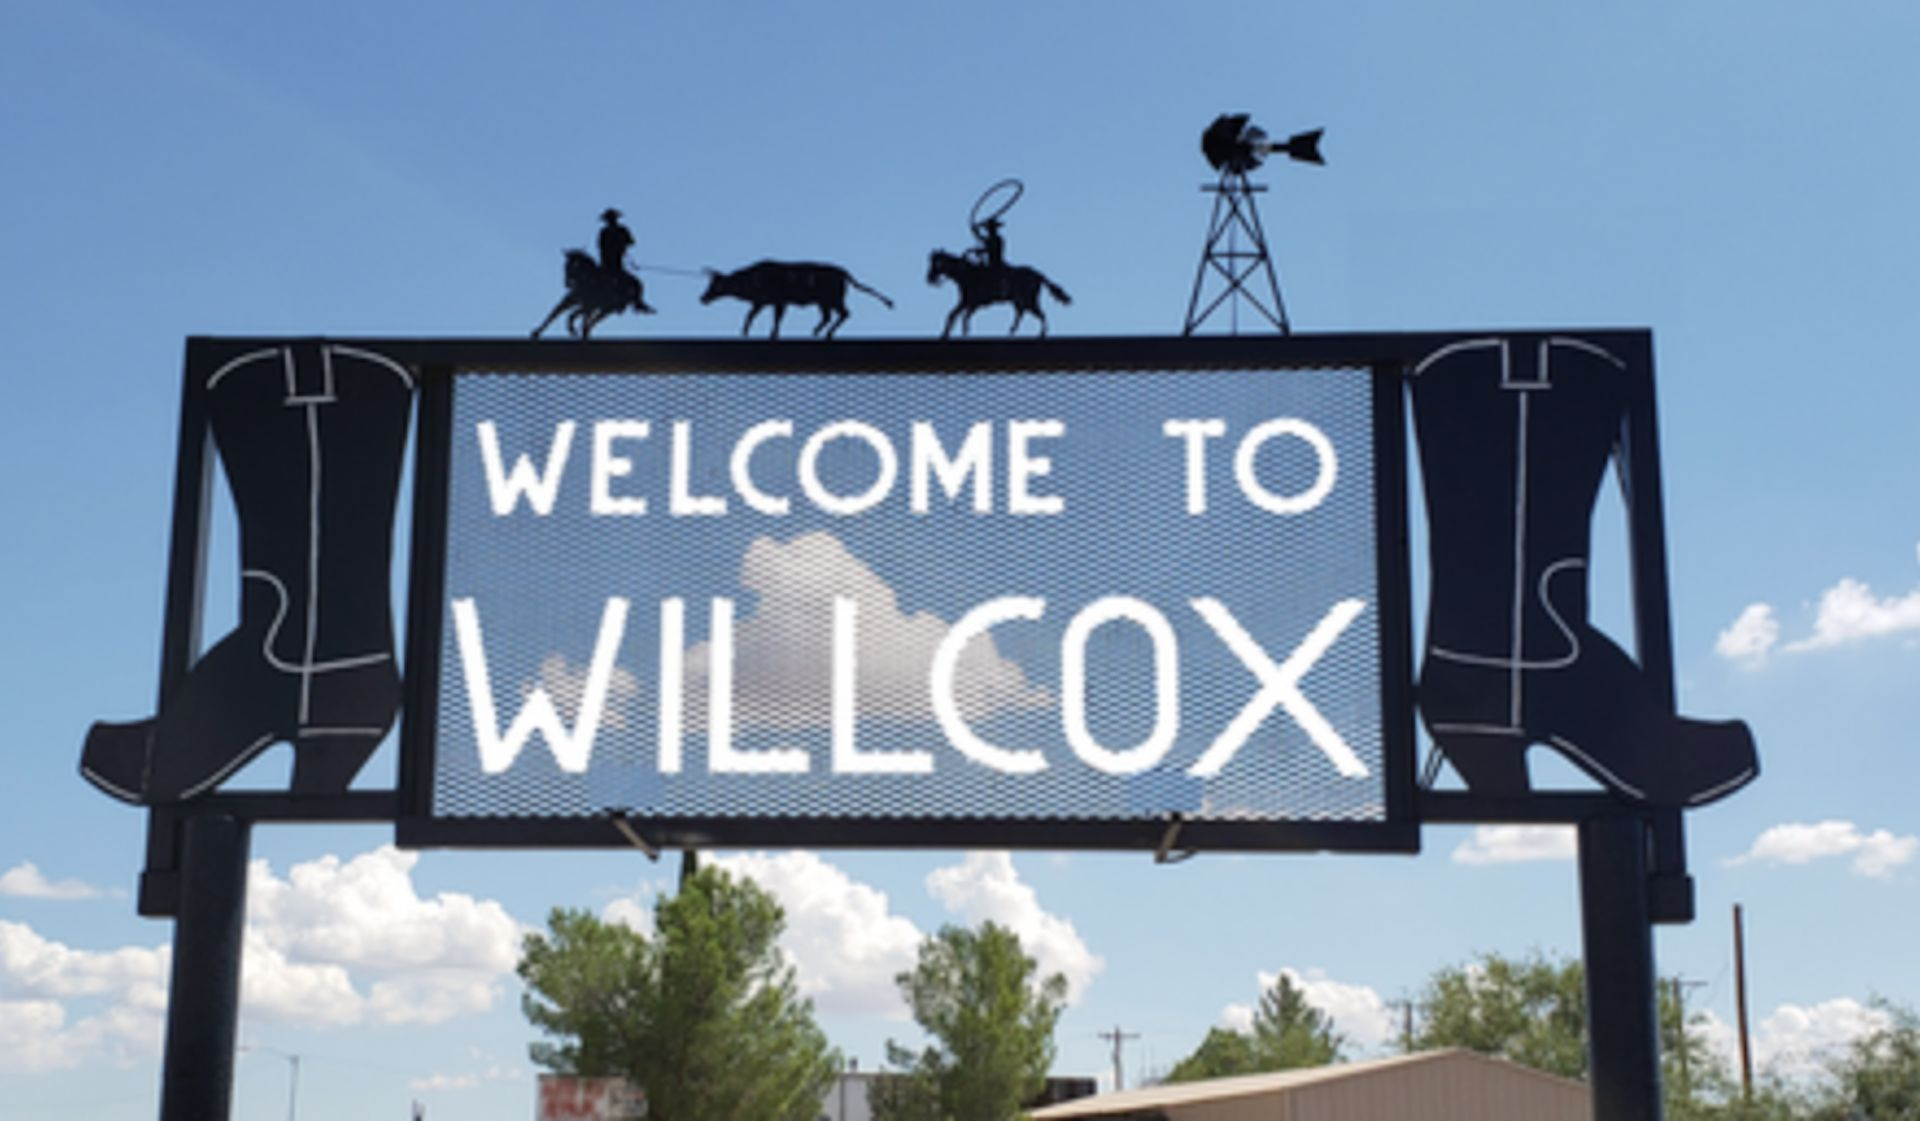 Four Adjacent Lots - A Quiet Oasis at the Edge of Historic Downtown Willcox in Cochise County - Image 5 of 5